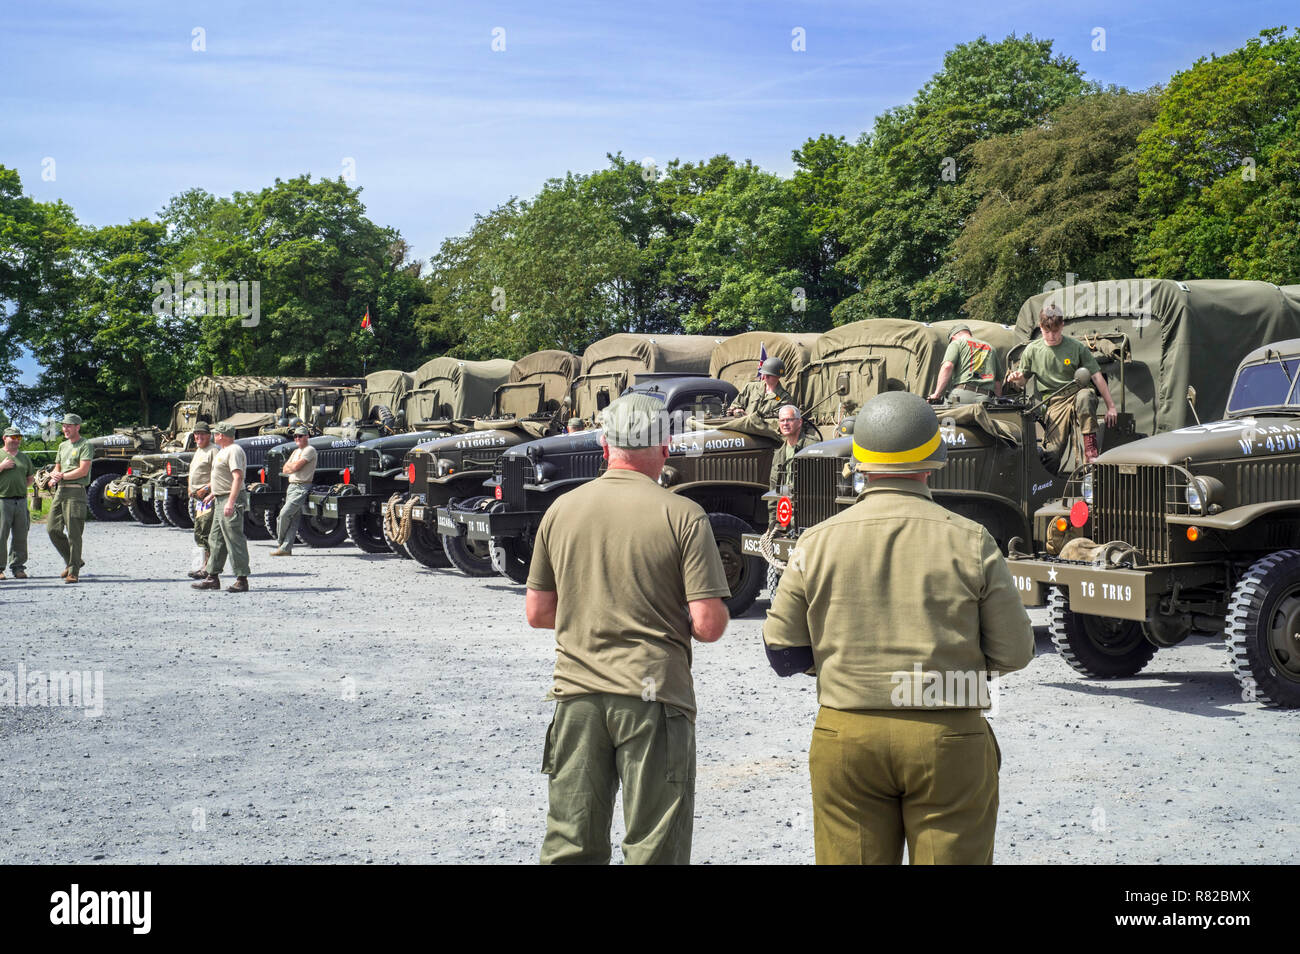 Meeting of re-enactors in American World War Two battledresses and GMC CCKW 6x6 US Army cargo trucks - Stock Image